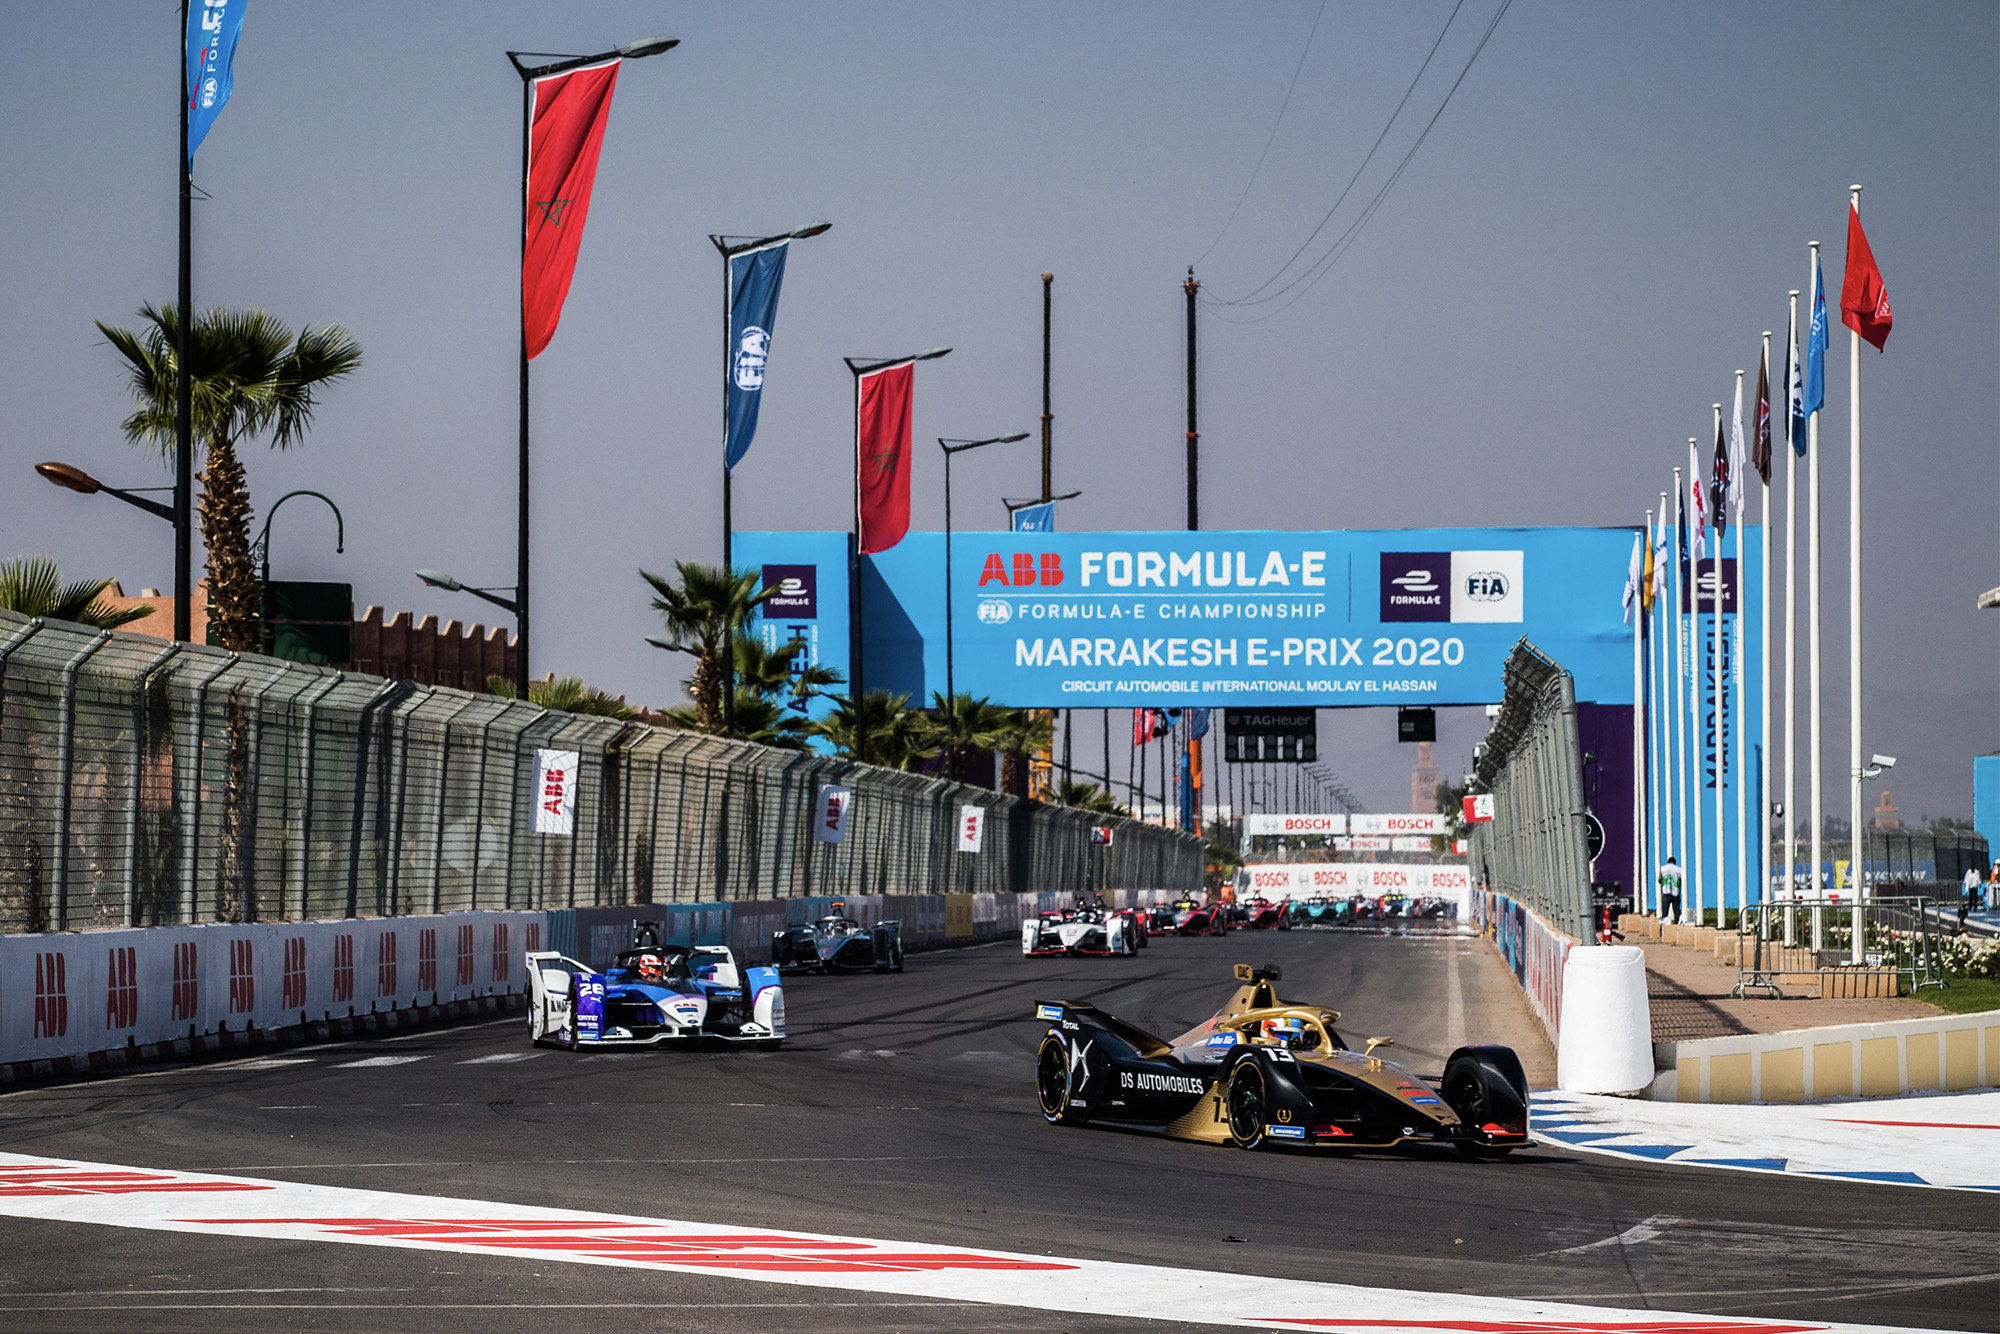 Formula E 2019/20 season temporarily suspended over coronavirus fears